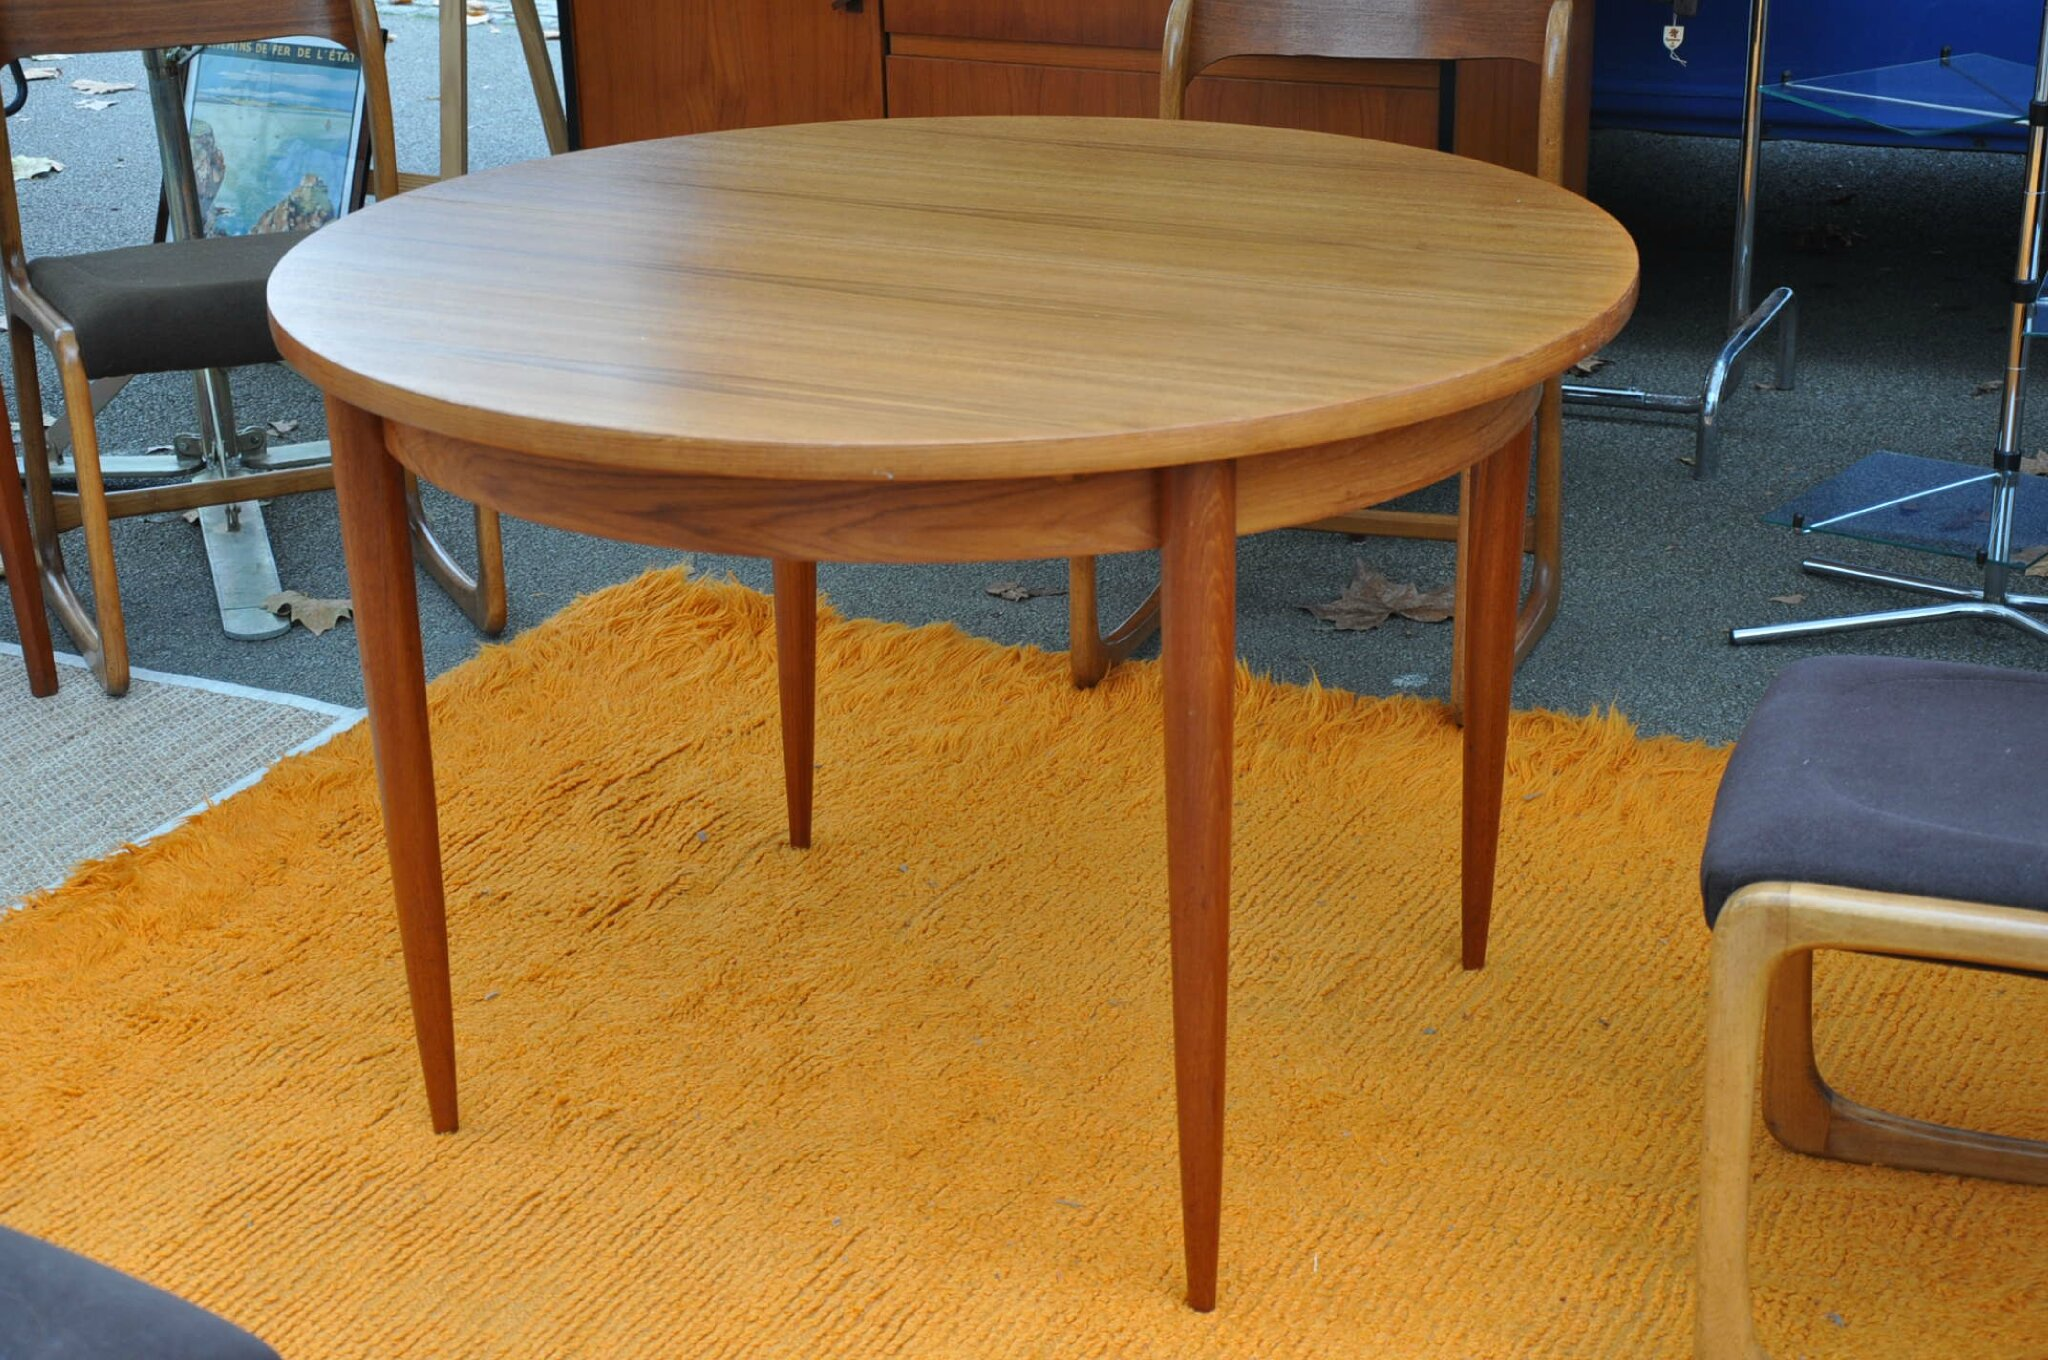 Table En Teck Ronde Table Ronde Teck De Type Scandinave Article Vendu Antiquités